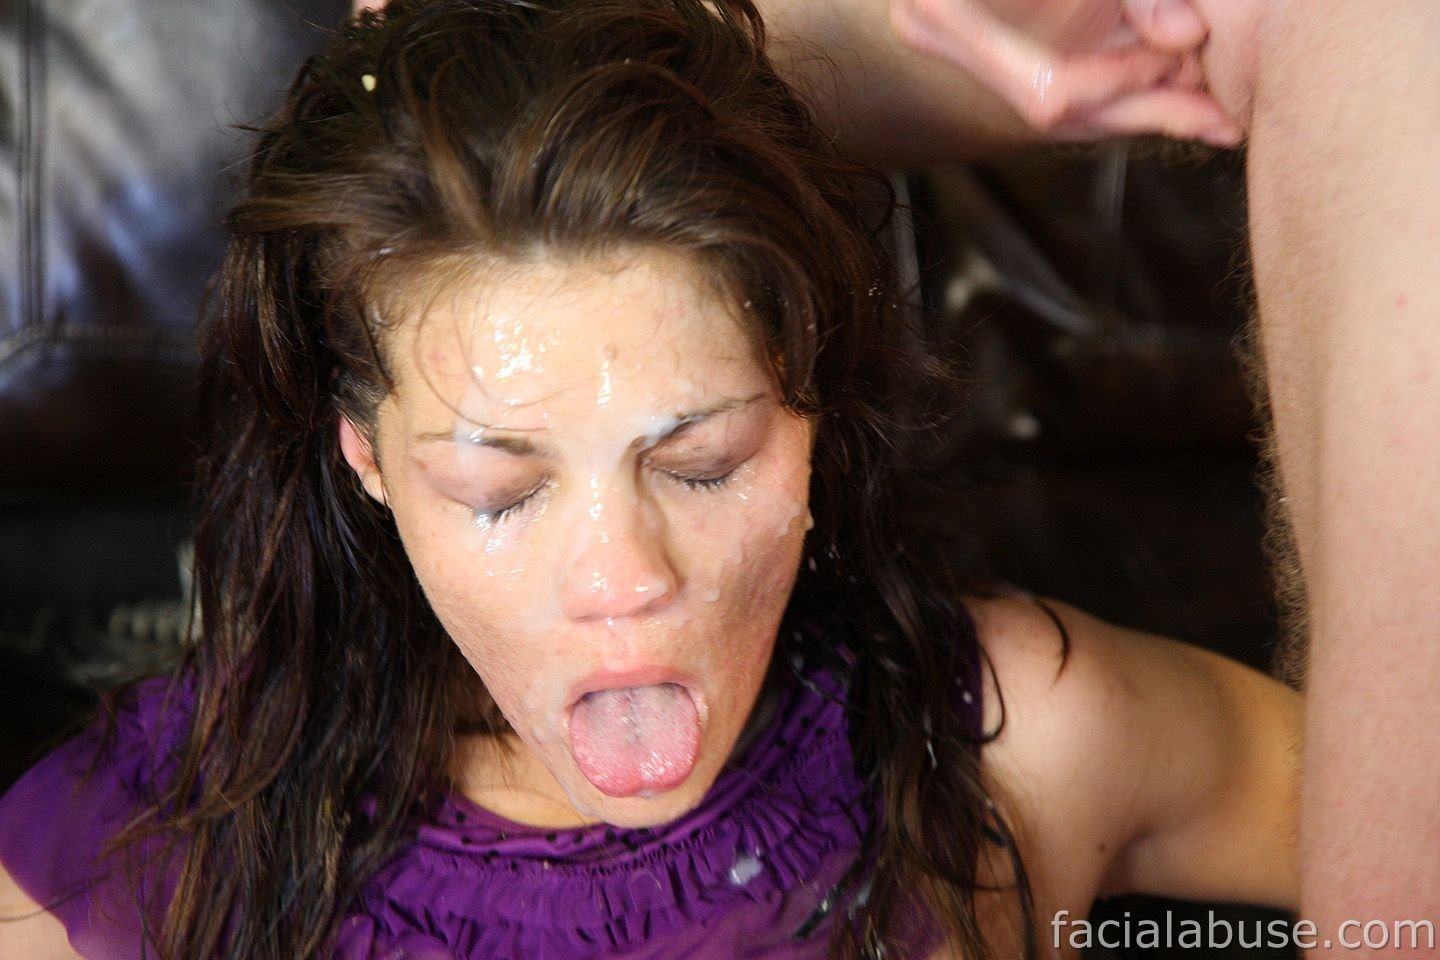 gloryhole accidental creampie